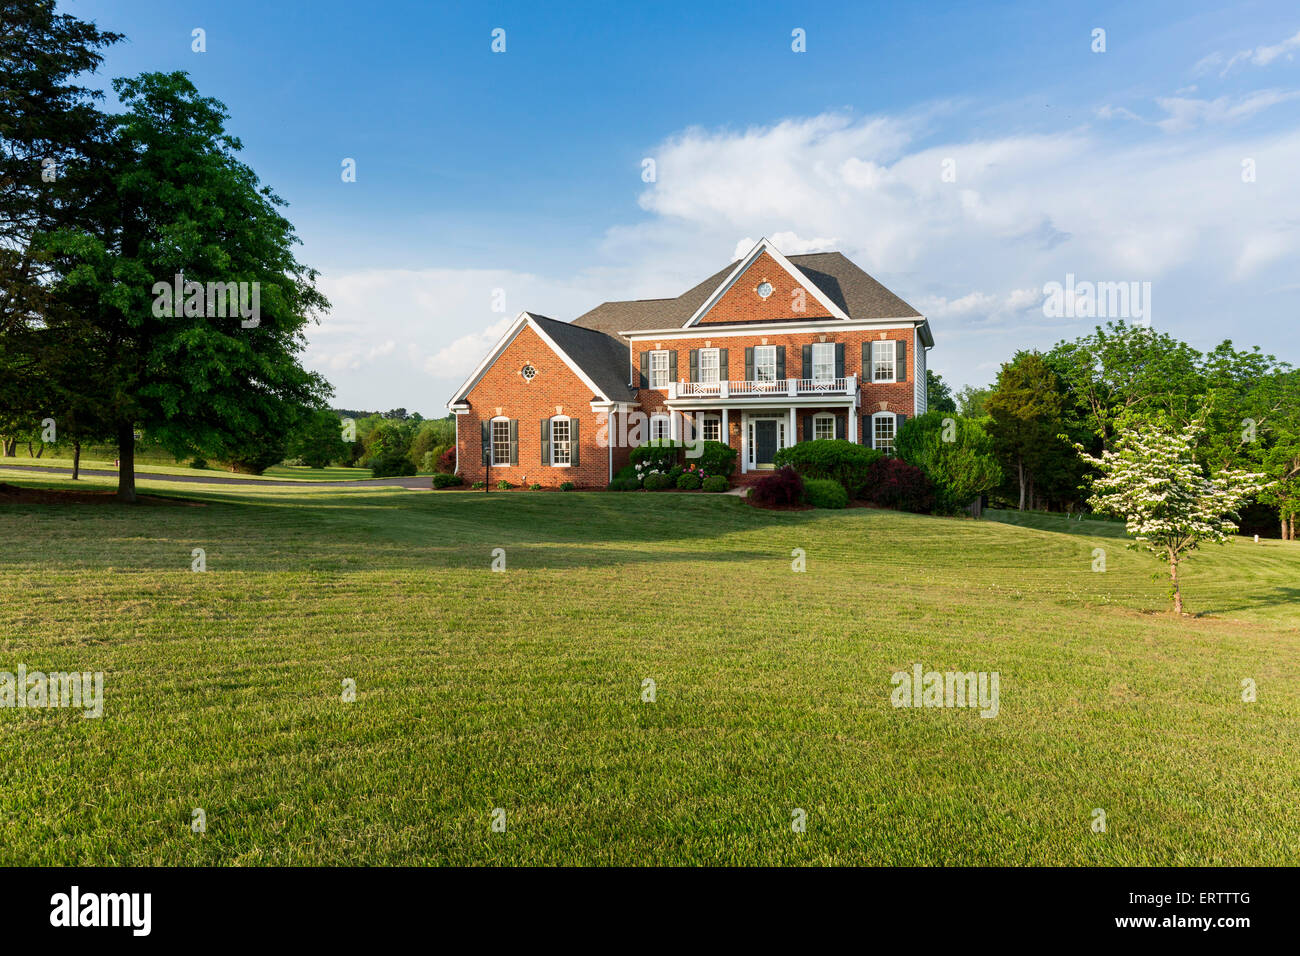 Detached house usa front of large single american family for Big houses in america